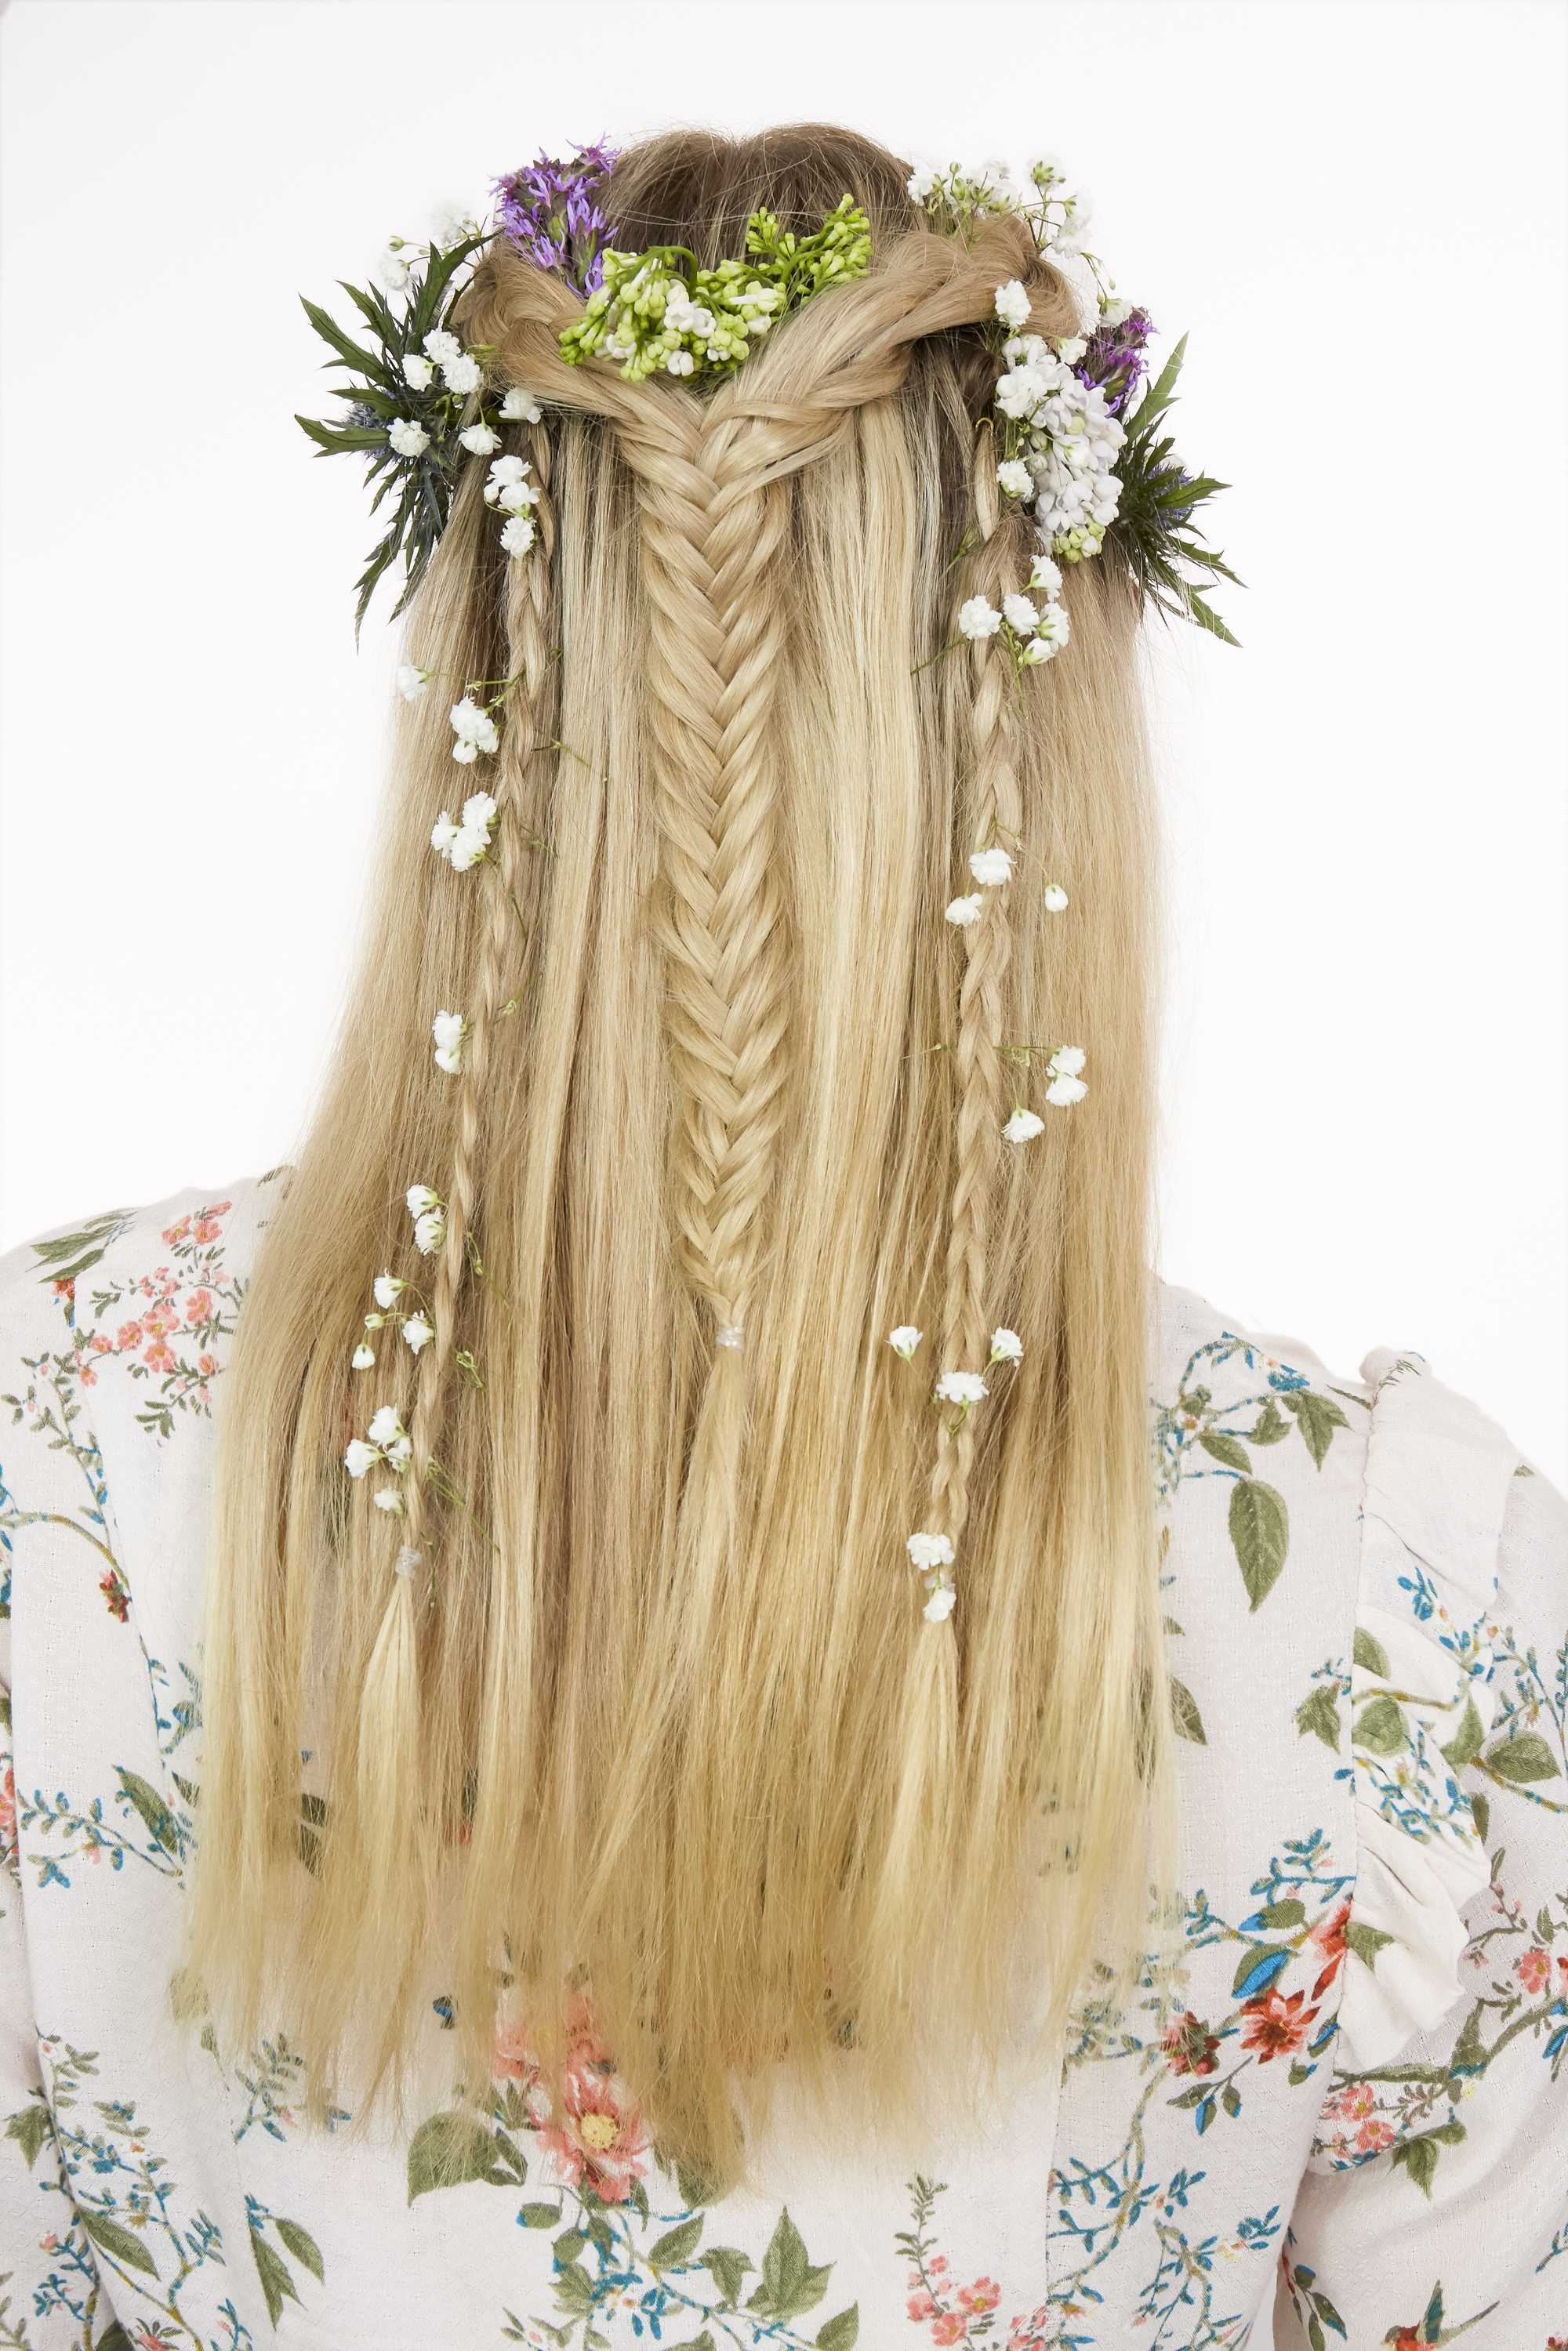 Woman with blonde straight hair in half-up braid